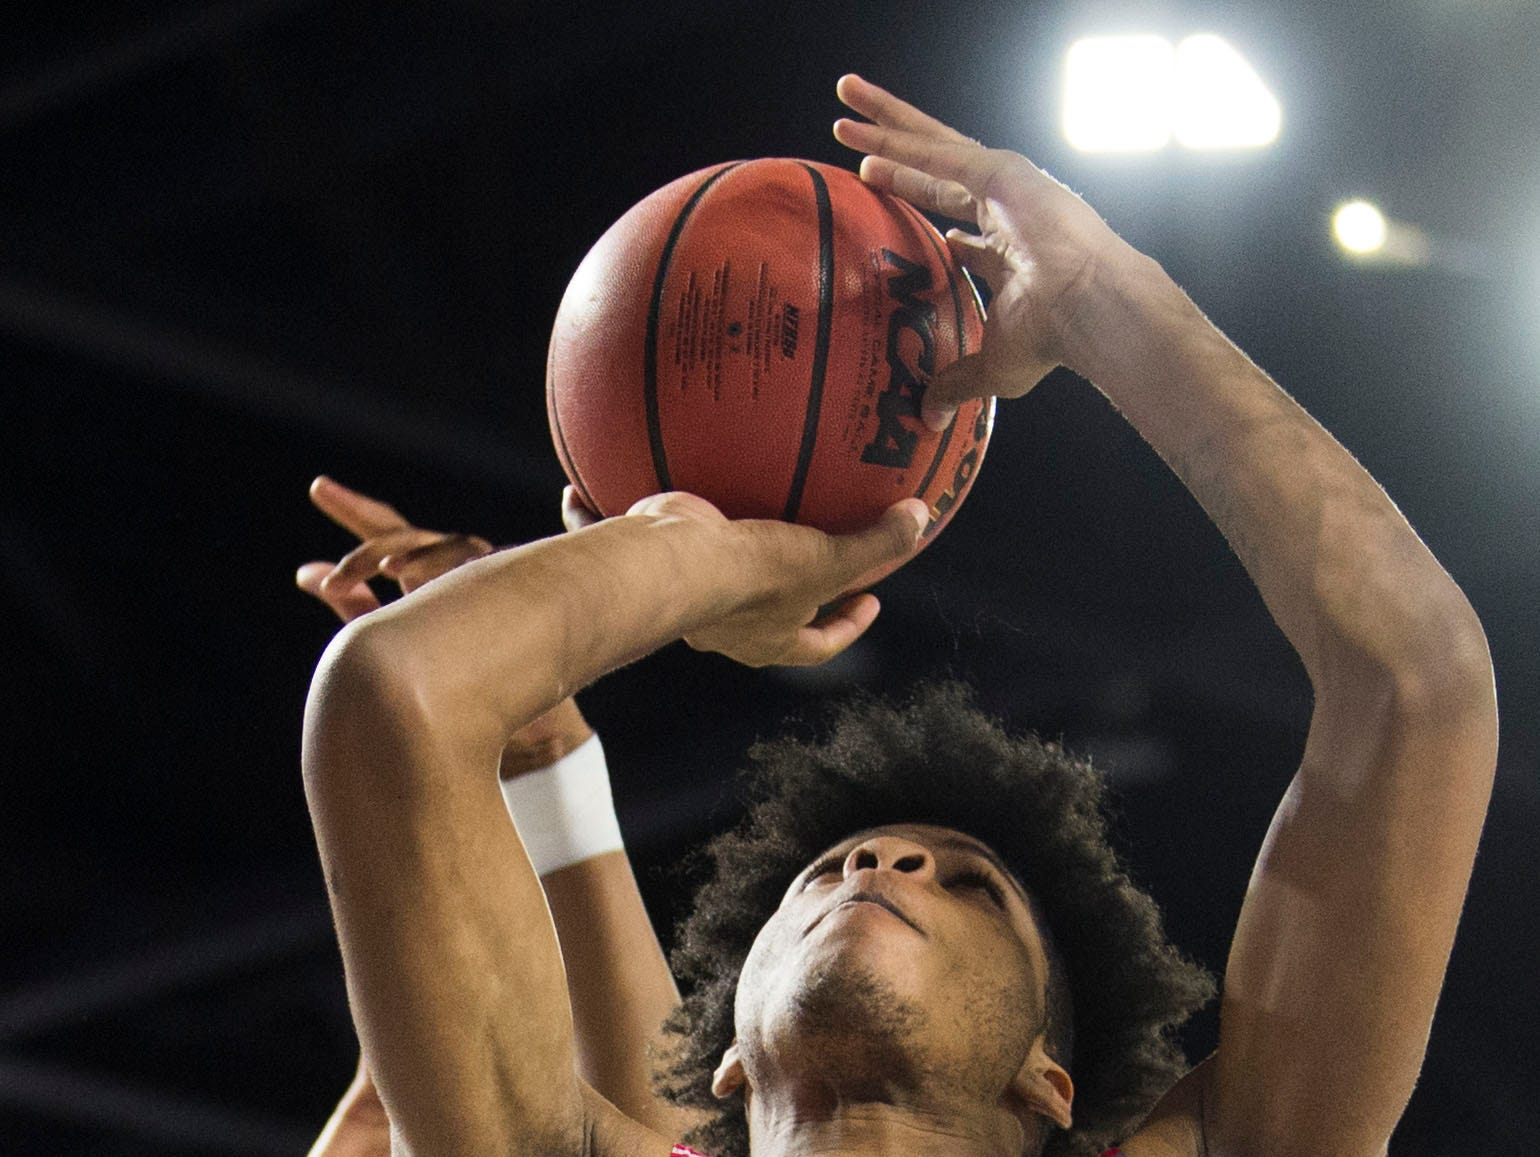 Austin-East's Gregory Stennis (35) takes a shot during a TSSAA AA state quarterfinal game between Austin-East and Wooddale at the Murphy Center in Murfreesboro, Wednesday, March 13, 2019. Wooddale defeated Austin-East 79-61.